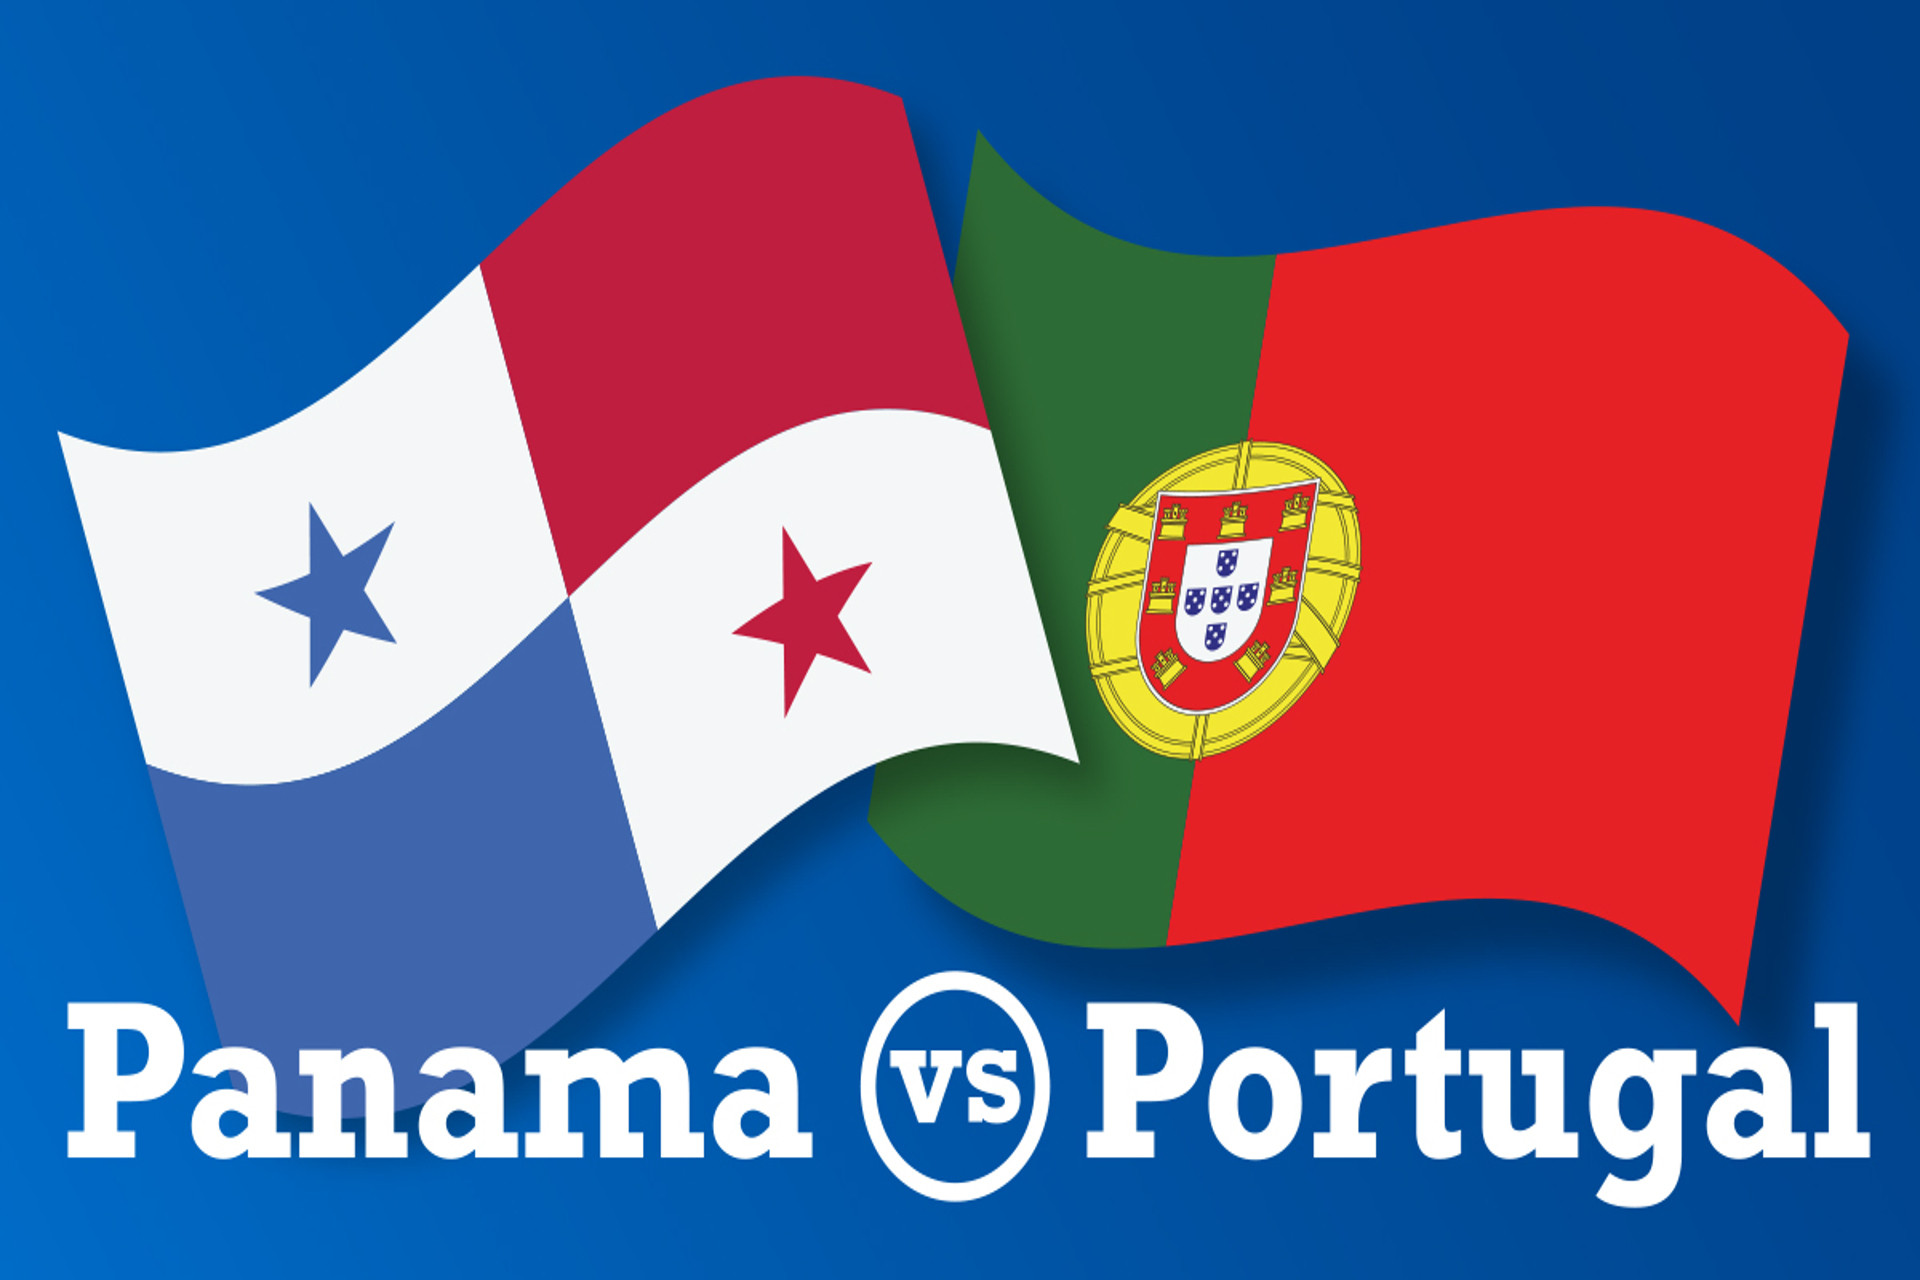 Panama and Portugal flags